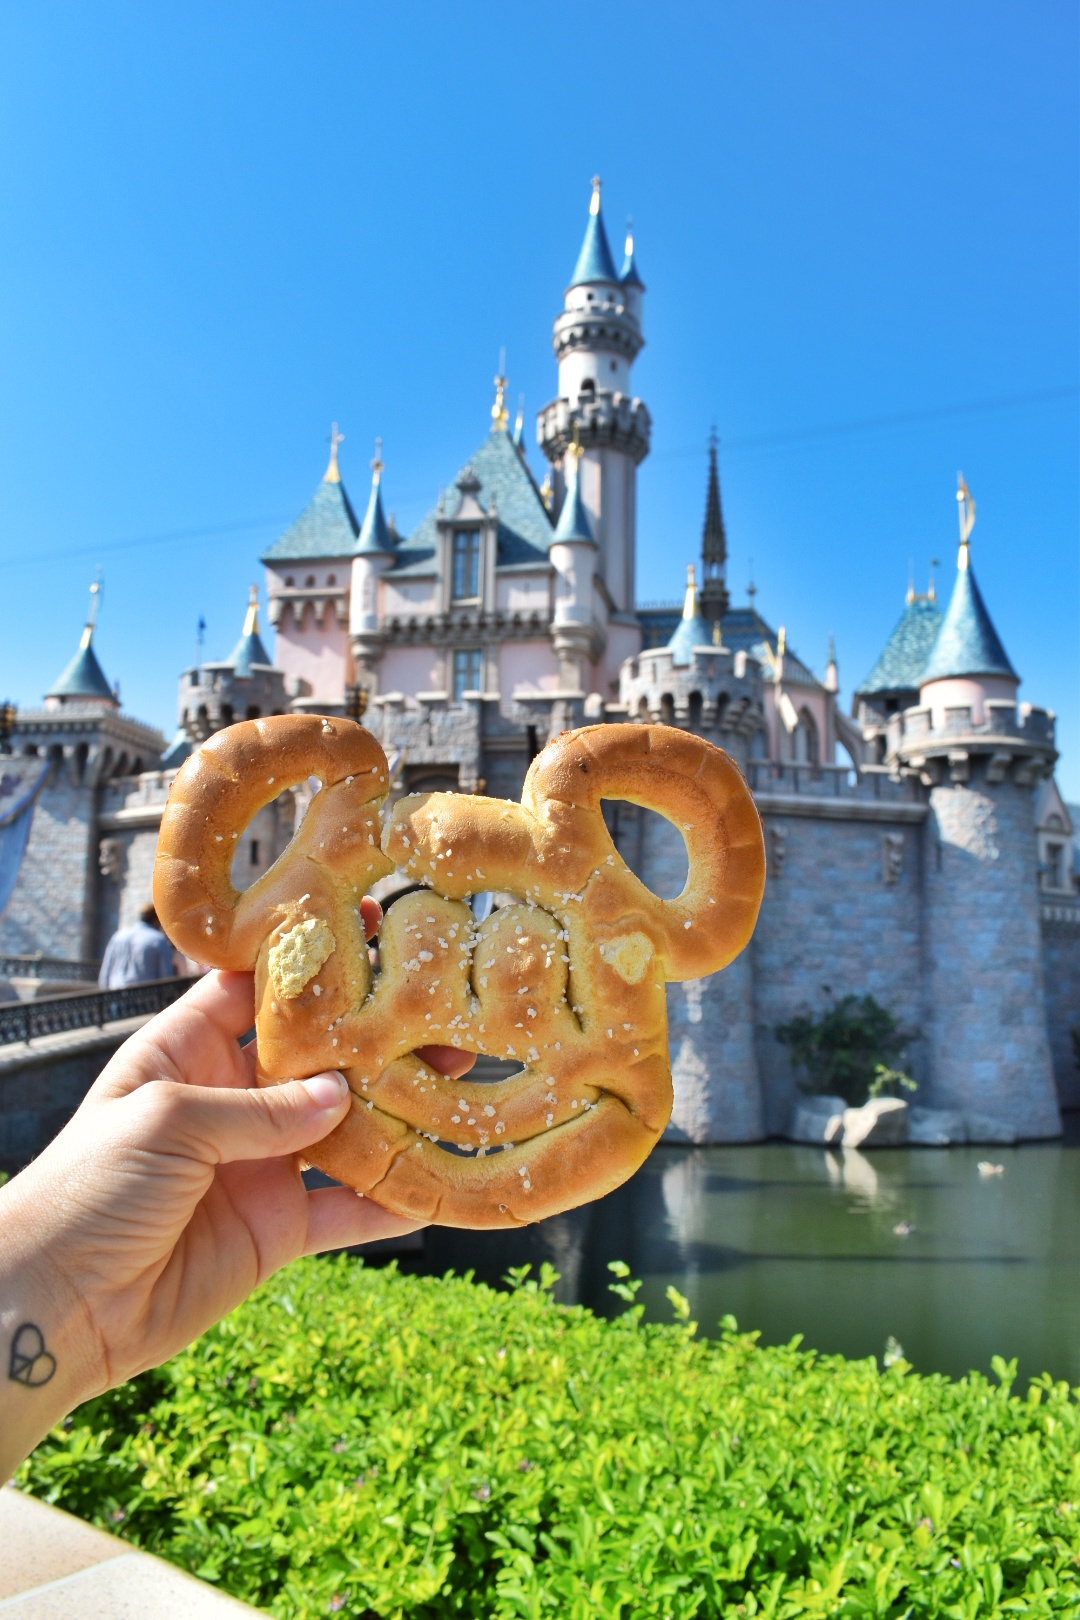 uprooted-traveler-how-to-have-fun-by-yourself-solo-alone-mickey-pretzel.jpeg